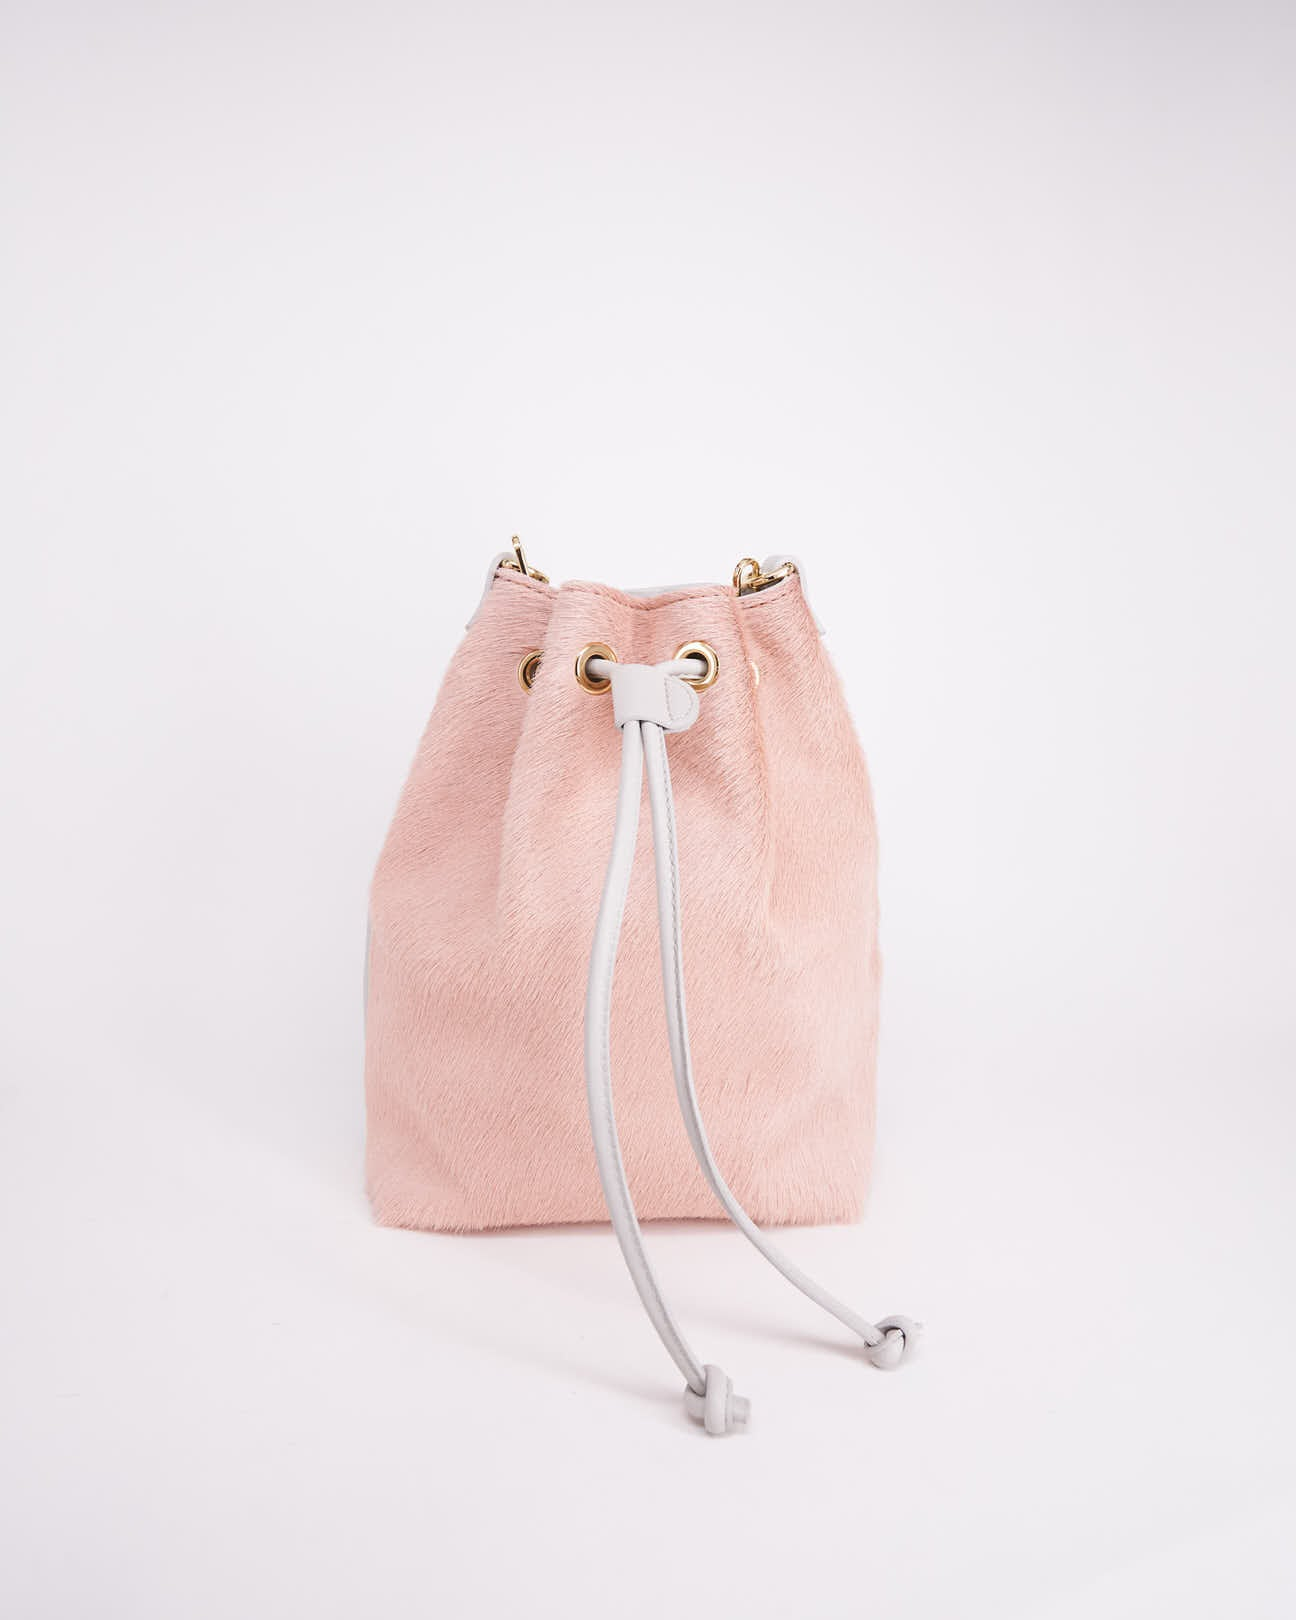 Bag-Nuo Sac-Nuovum-Leather-Pink-localdesigners-Barcelona-Nuovum-Handmade-front